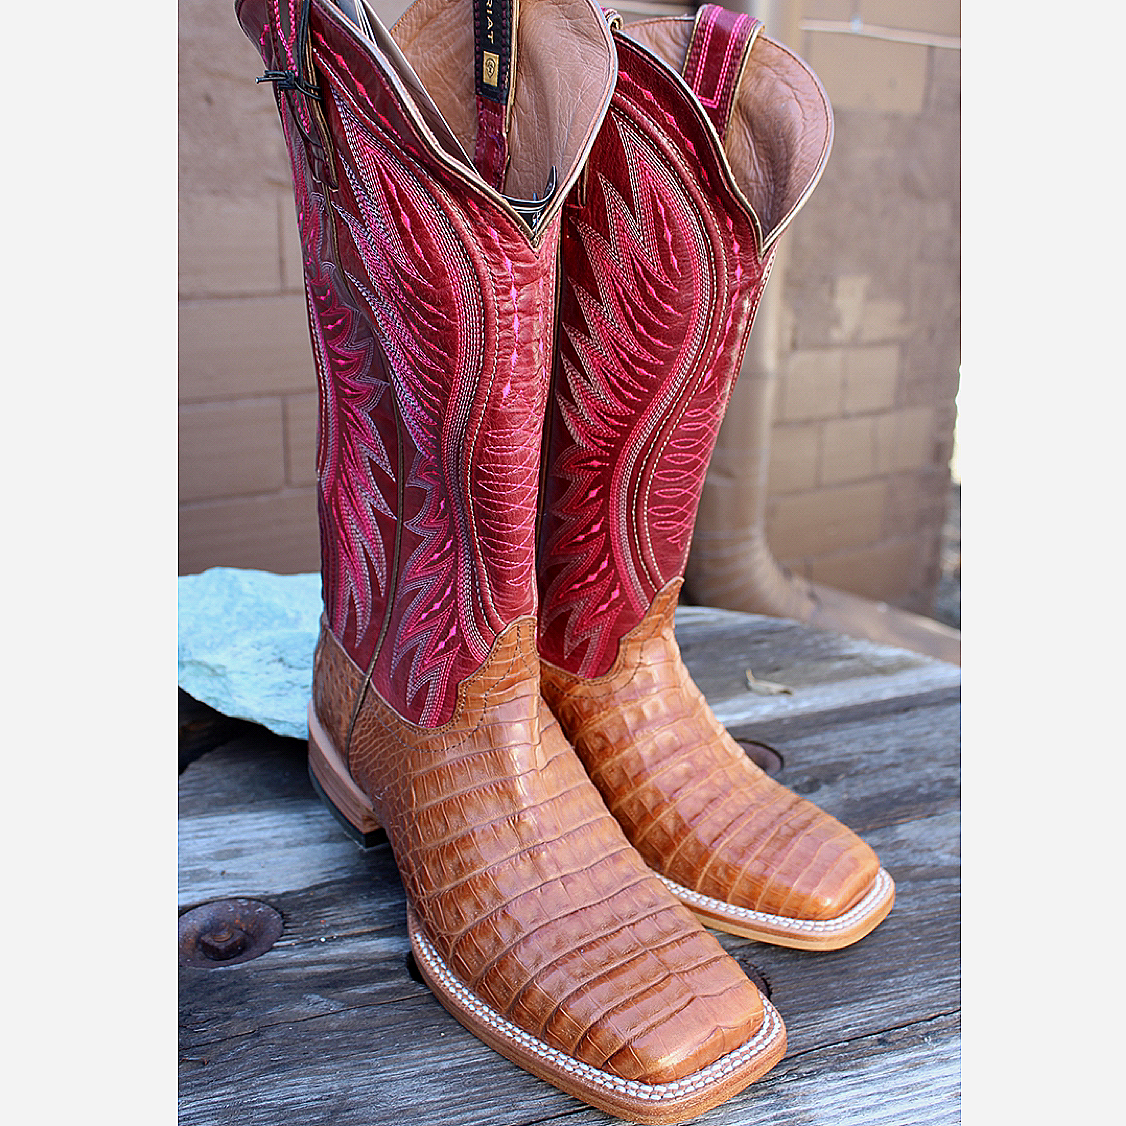 Valquera Caiman Boot from Ariat